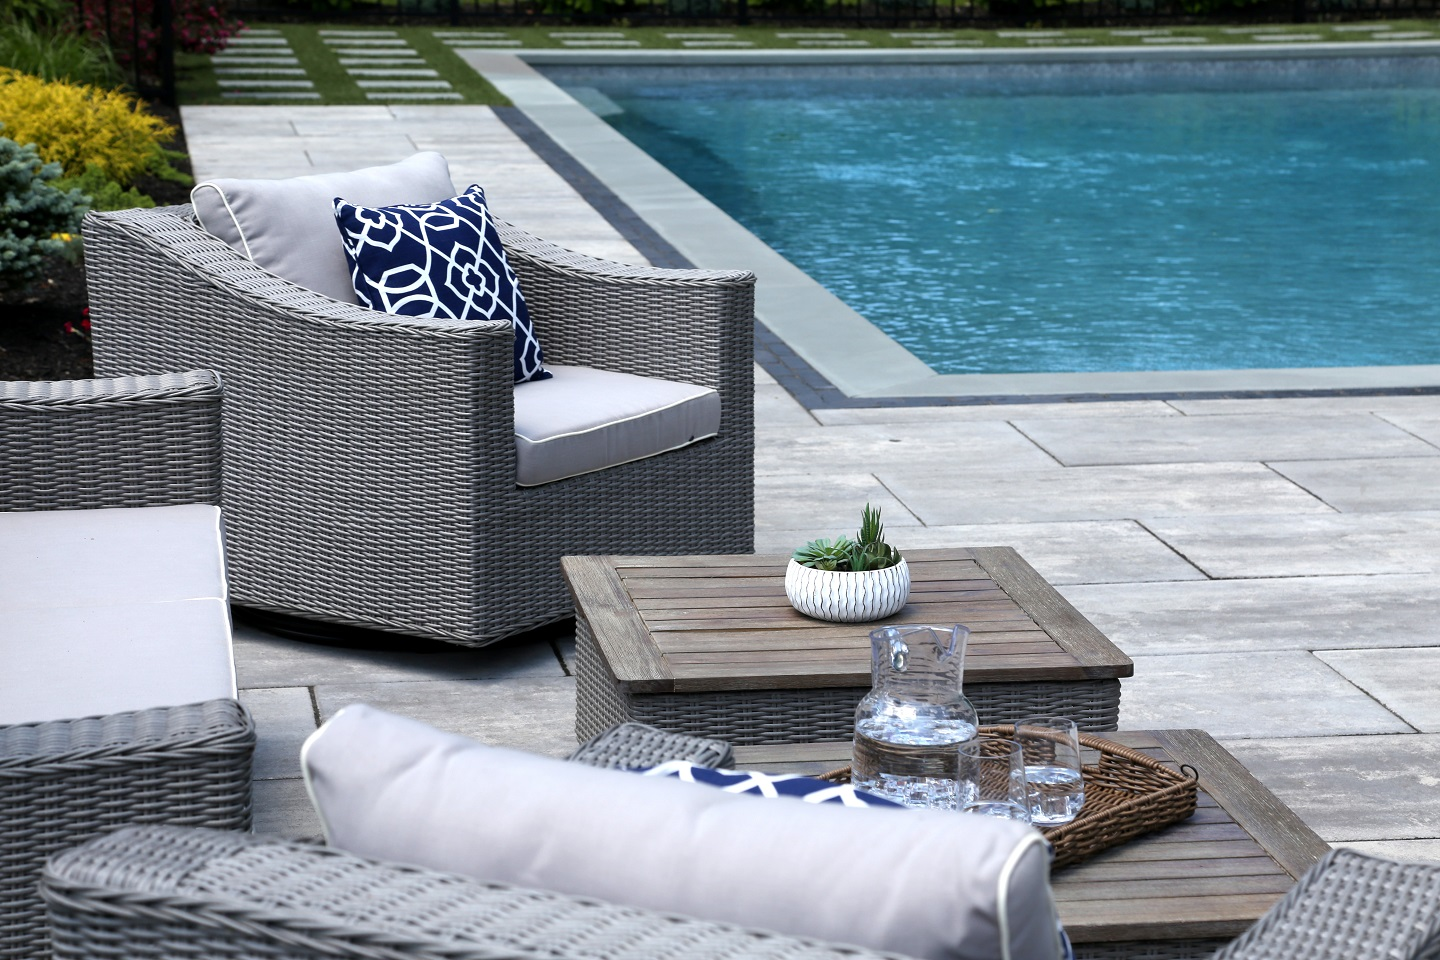 Landscape architecture - patios and swimming pool in Commack NY